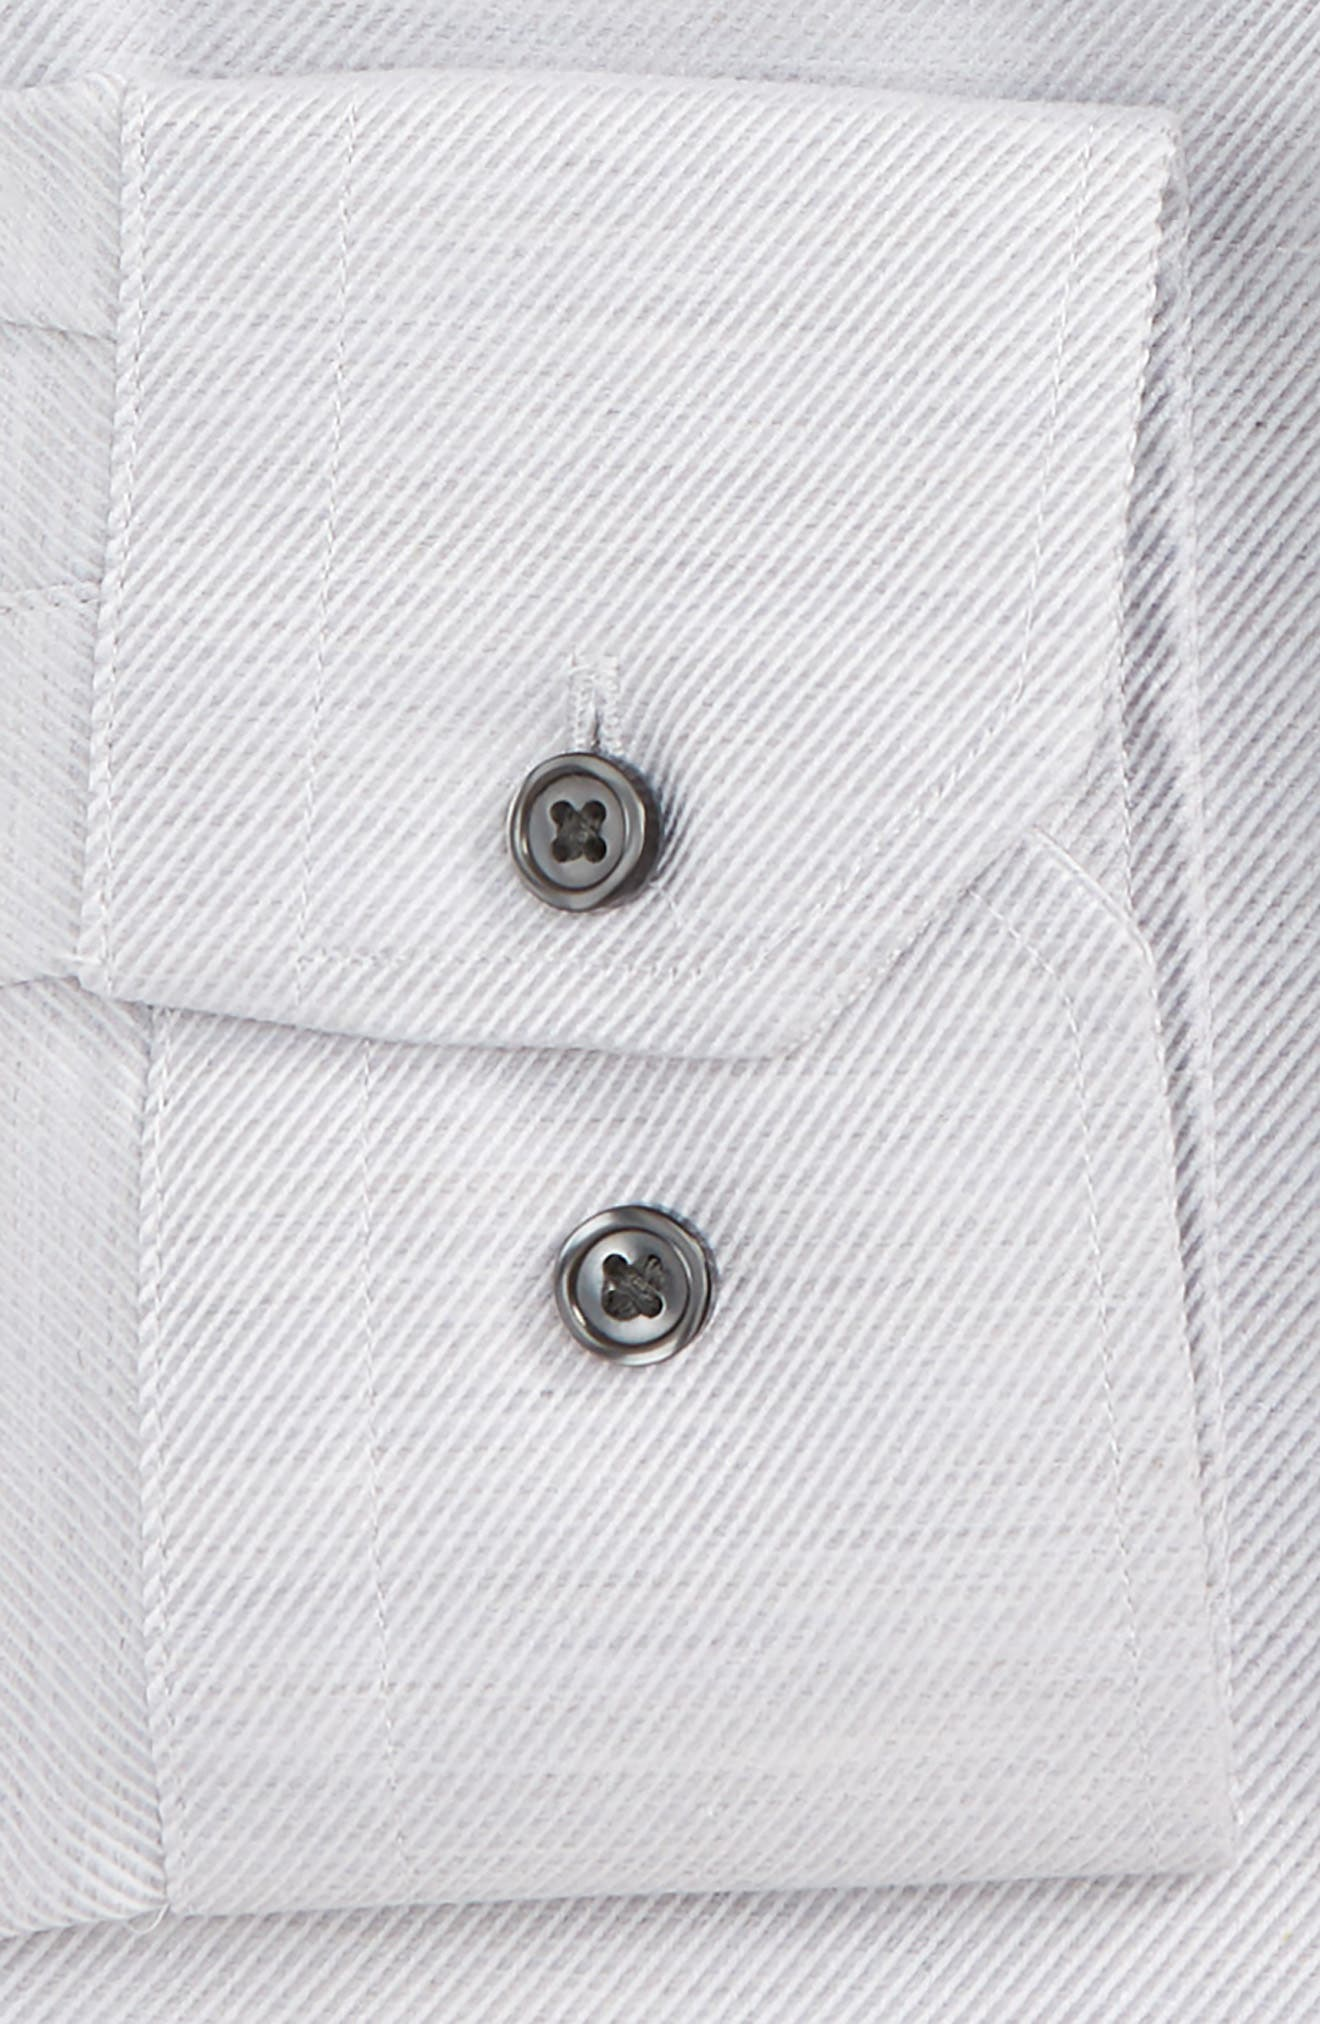 Trim Fit Twill Dress Shirt,                             Alternate thumbnail 2, color,                             Grey Heather